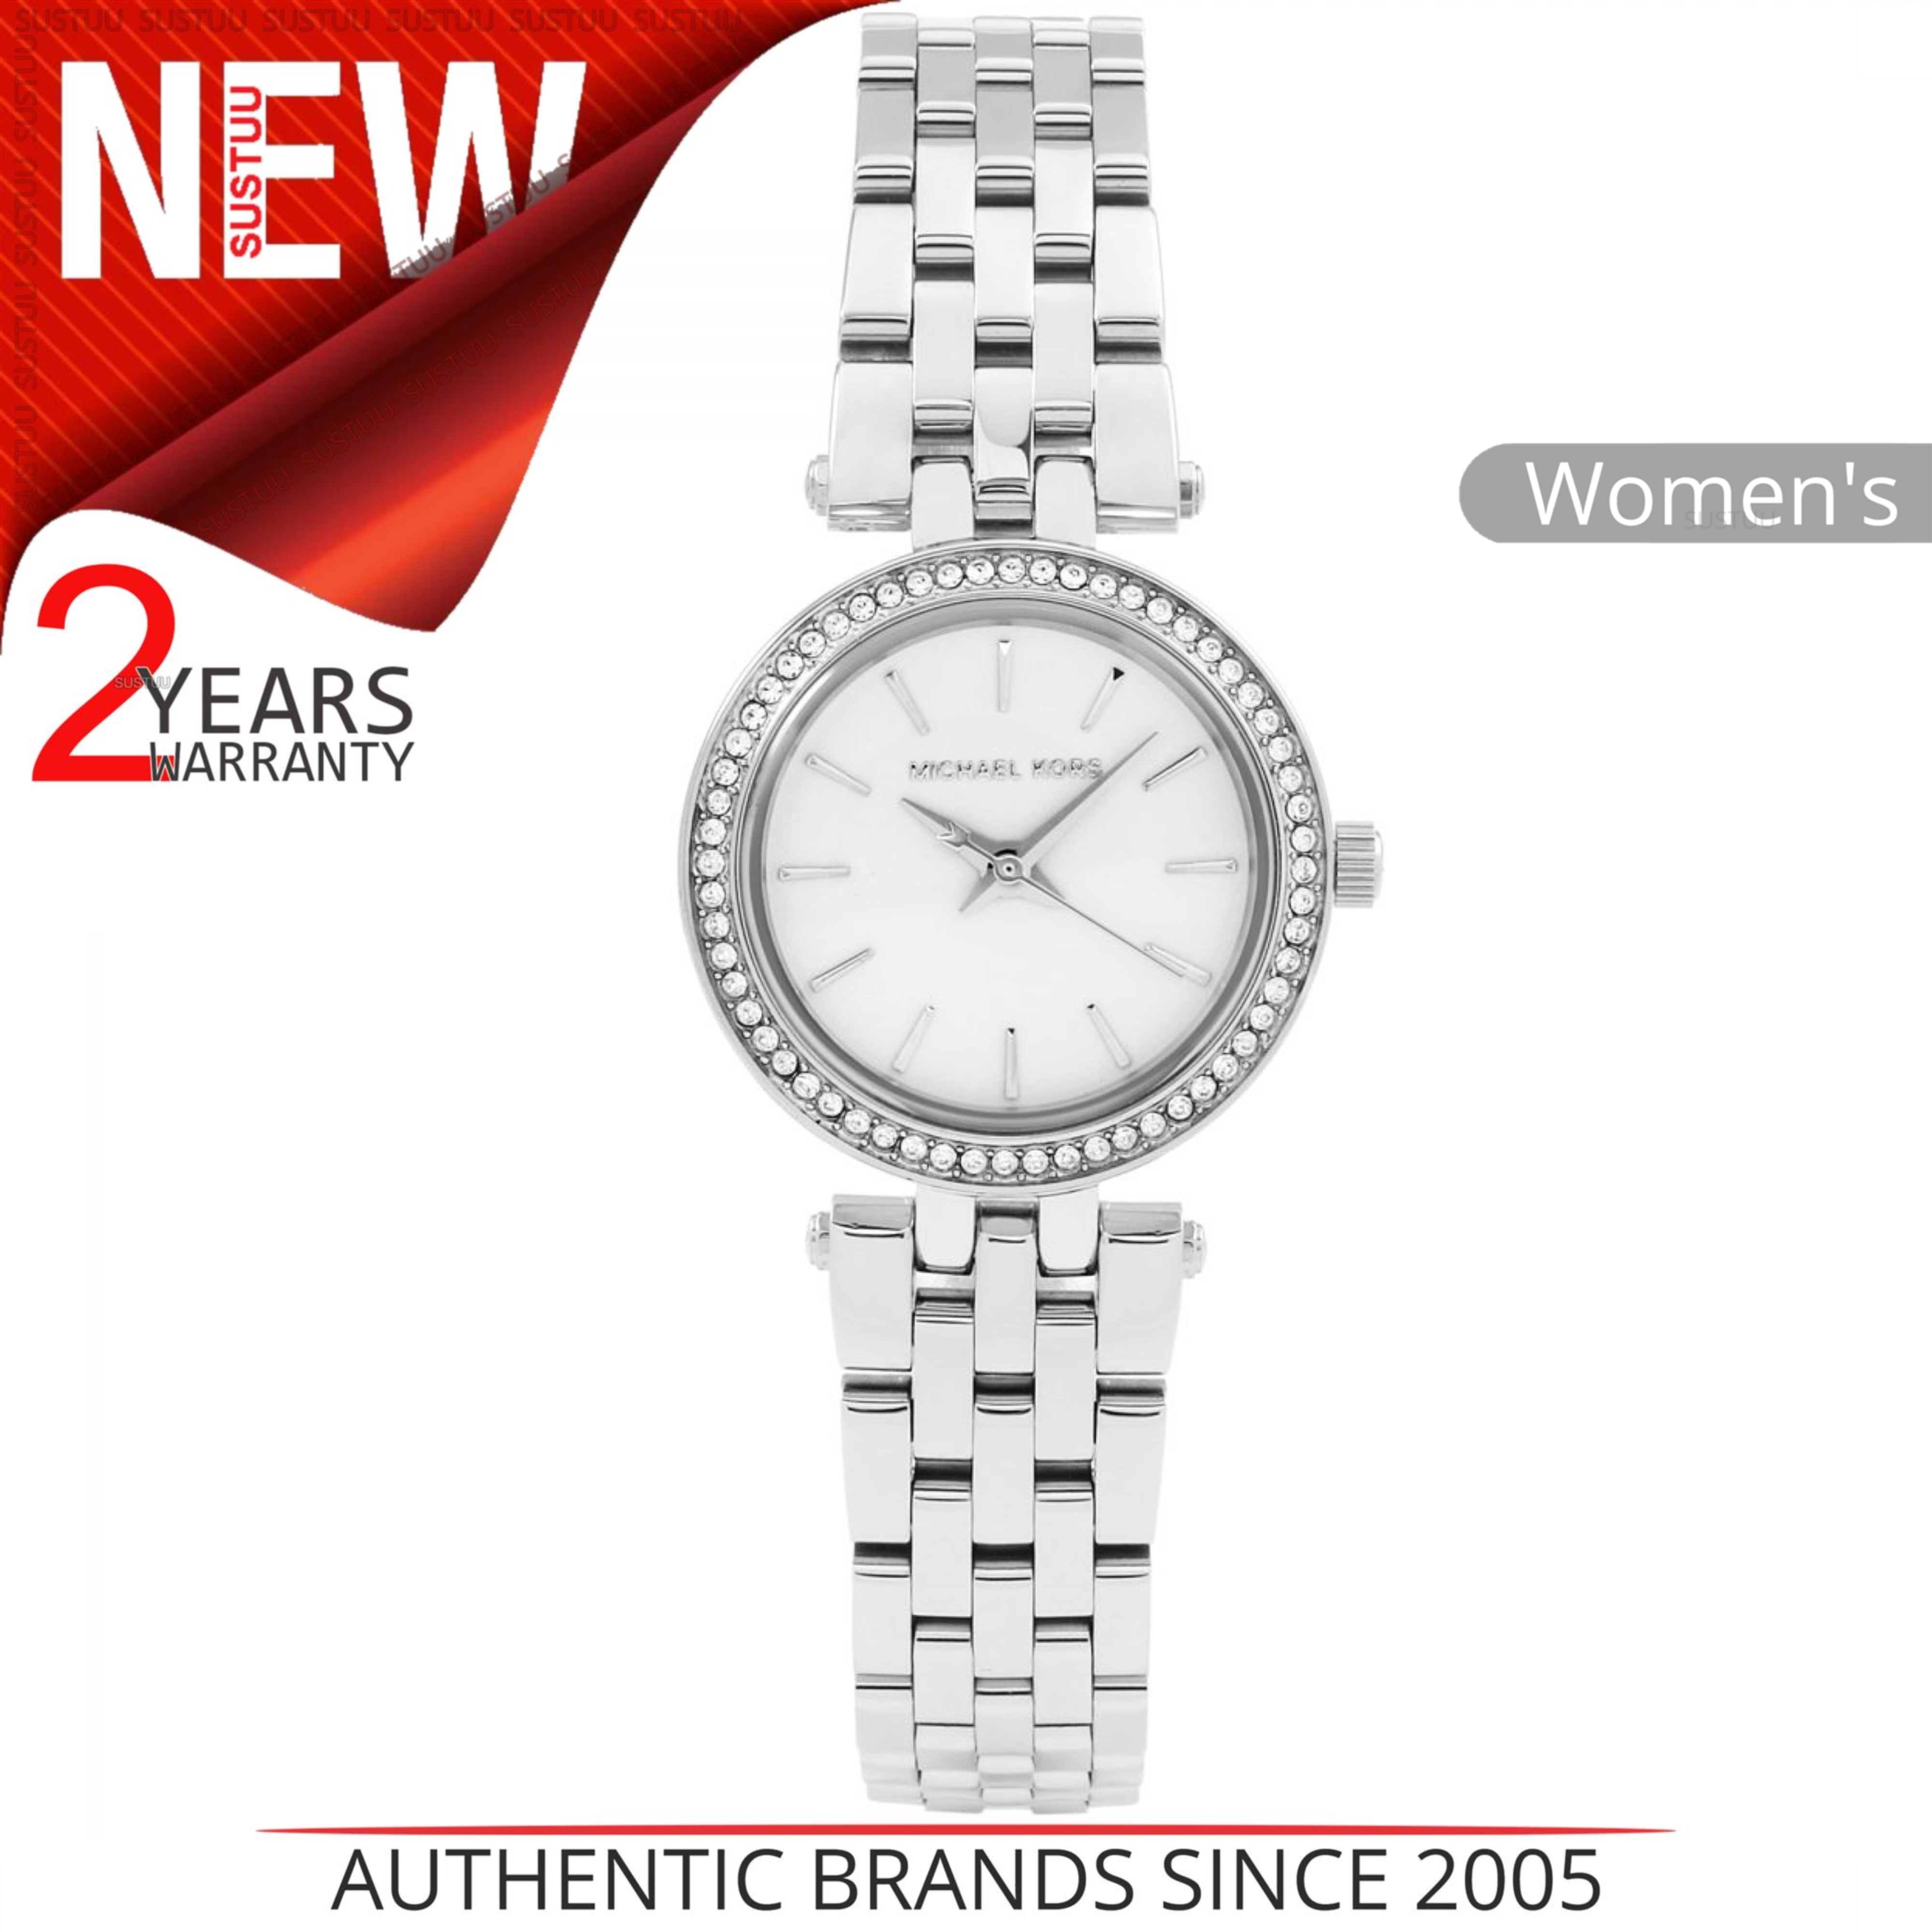 Details about Michael Kors Petite Darci Women s Watch│Round Dial│Silver  Bracelet Band│MK3294 3e1223f296